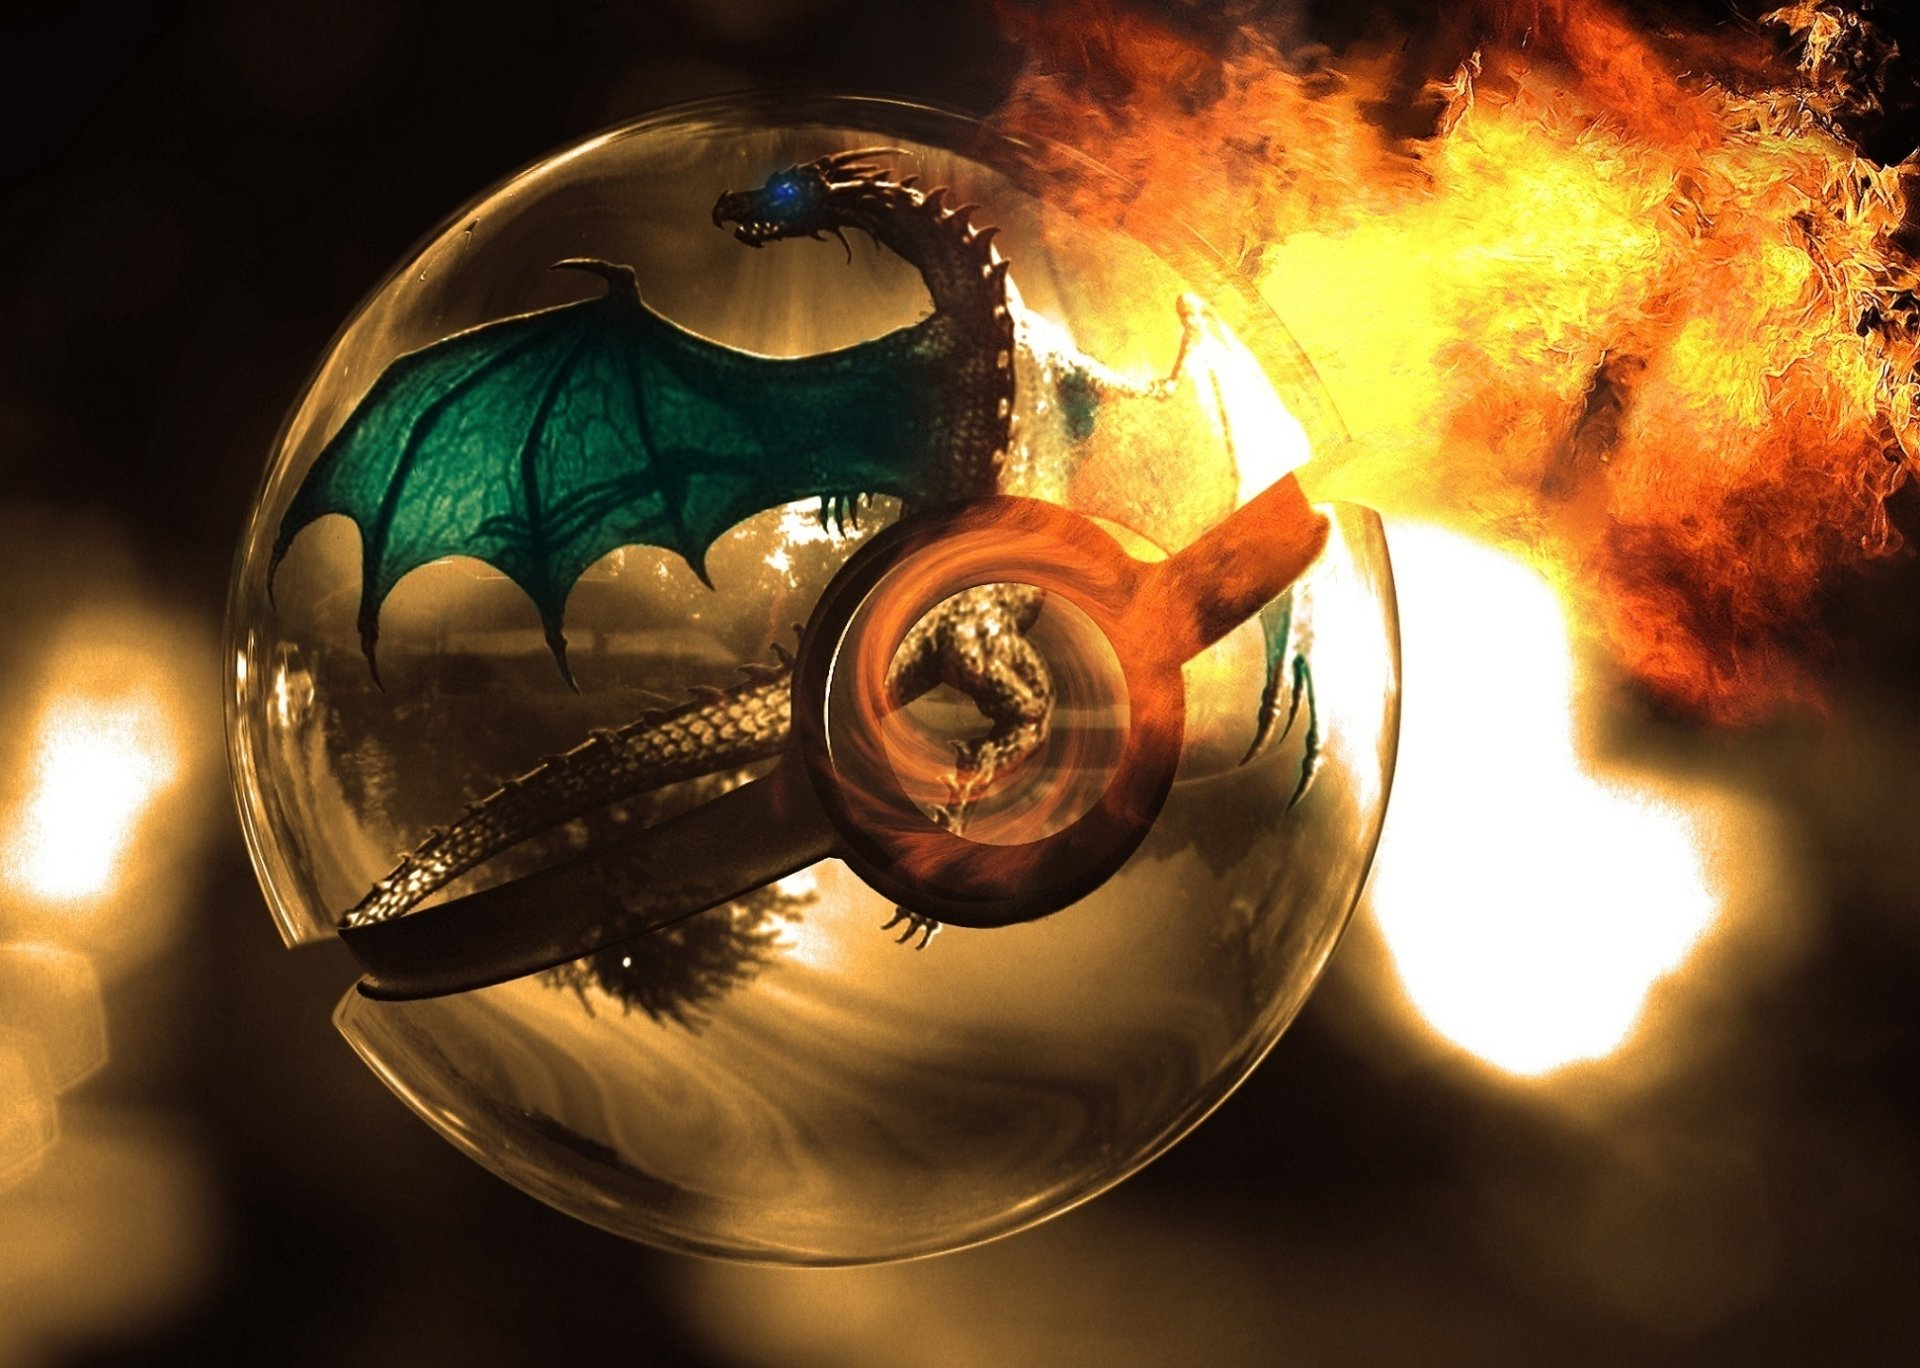 Anime - Pokémon  Charizard (Pokémon) Pokeball Dragon Feu Flamme Fond d'écran